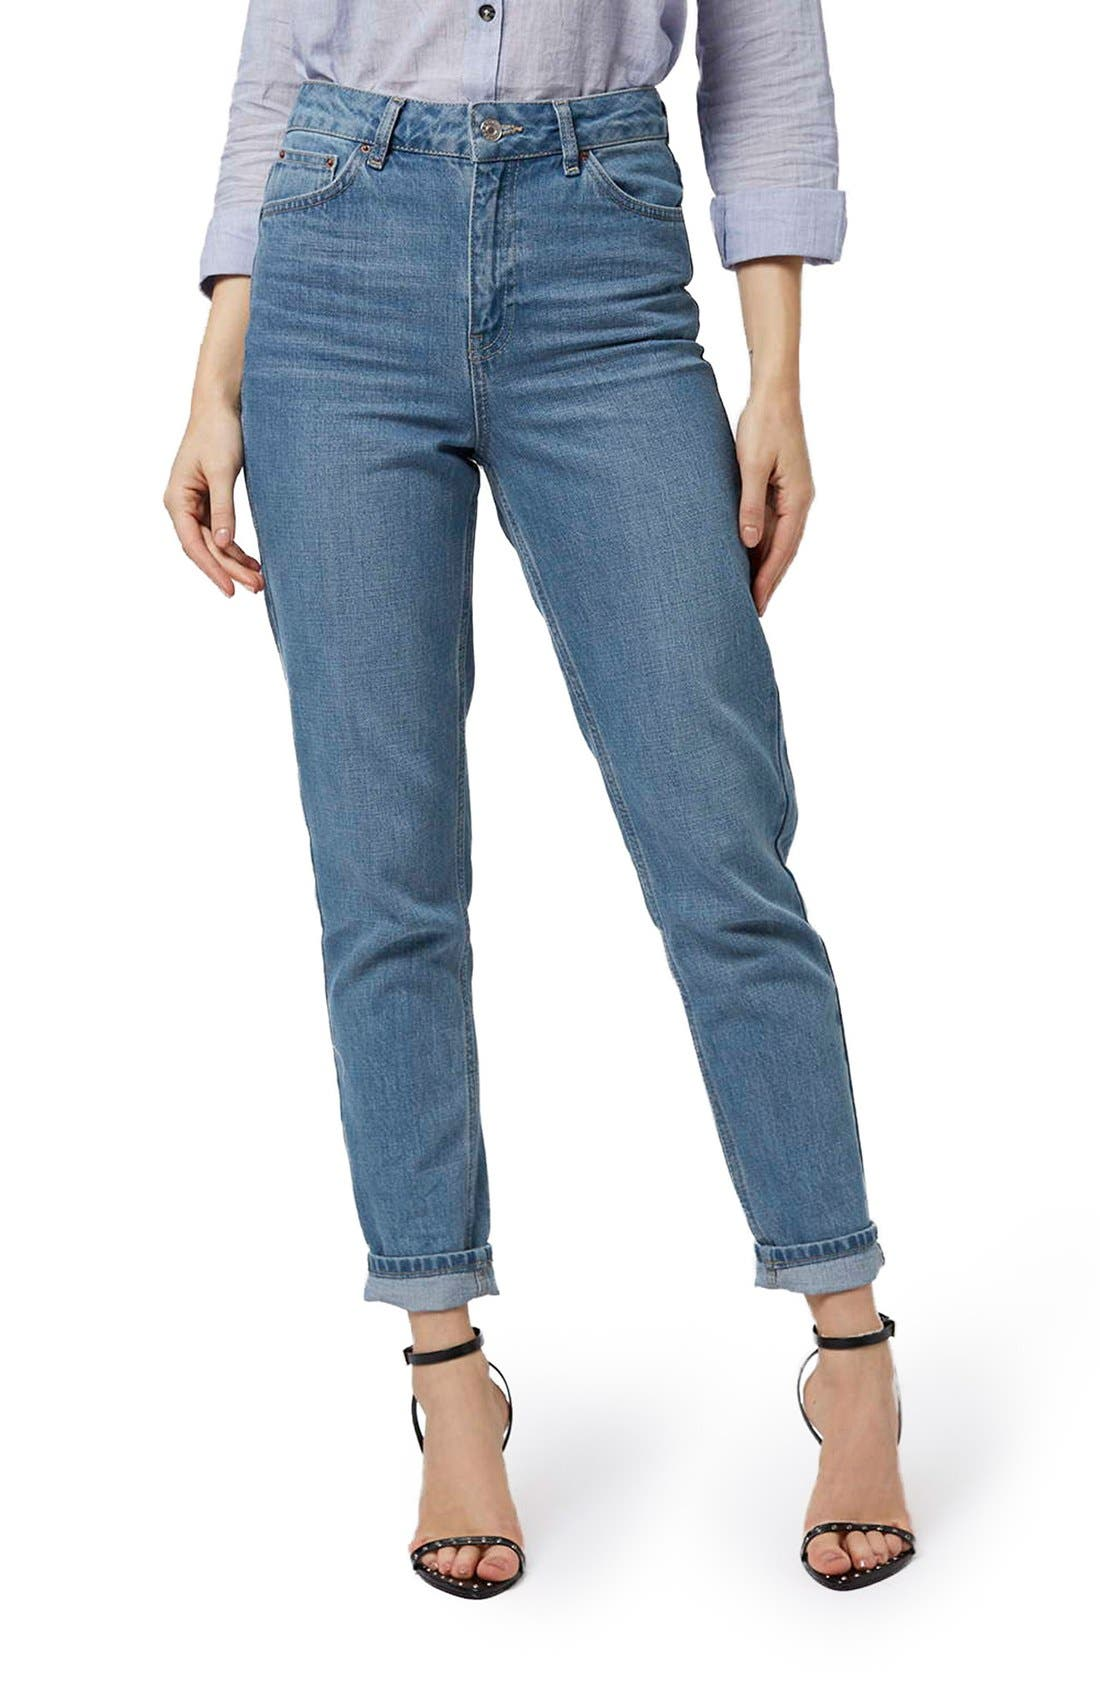 Alternate Image 1 Selected - Topshop High Rise Mom Jeans